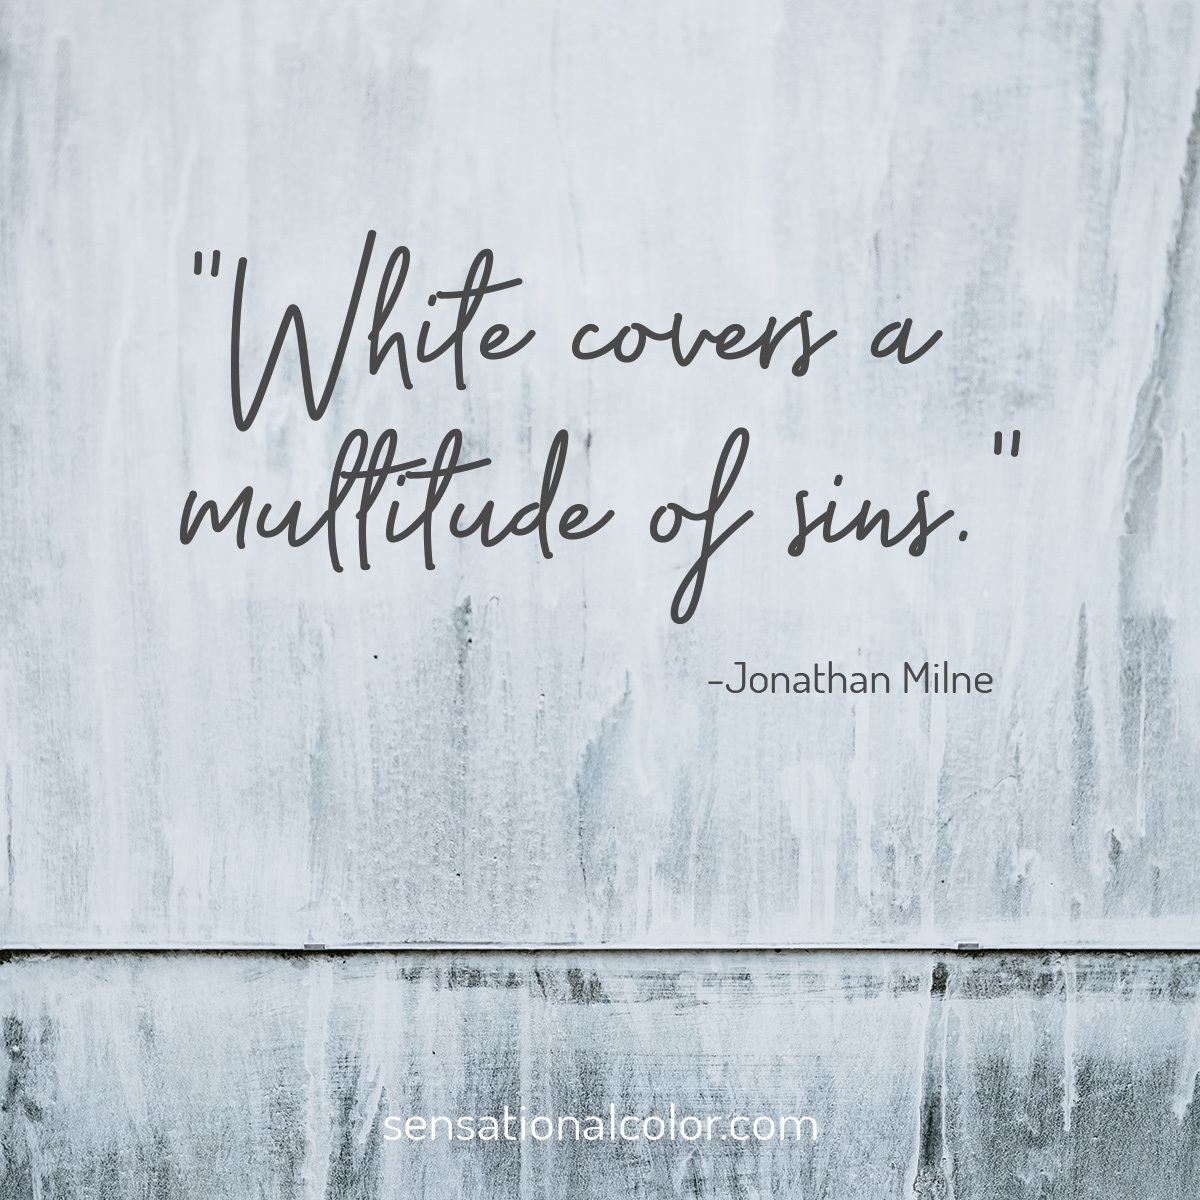 """White covers a multitude of sins."" - Jonathan Milne"